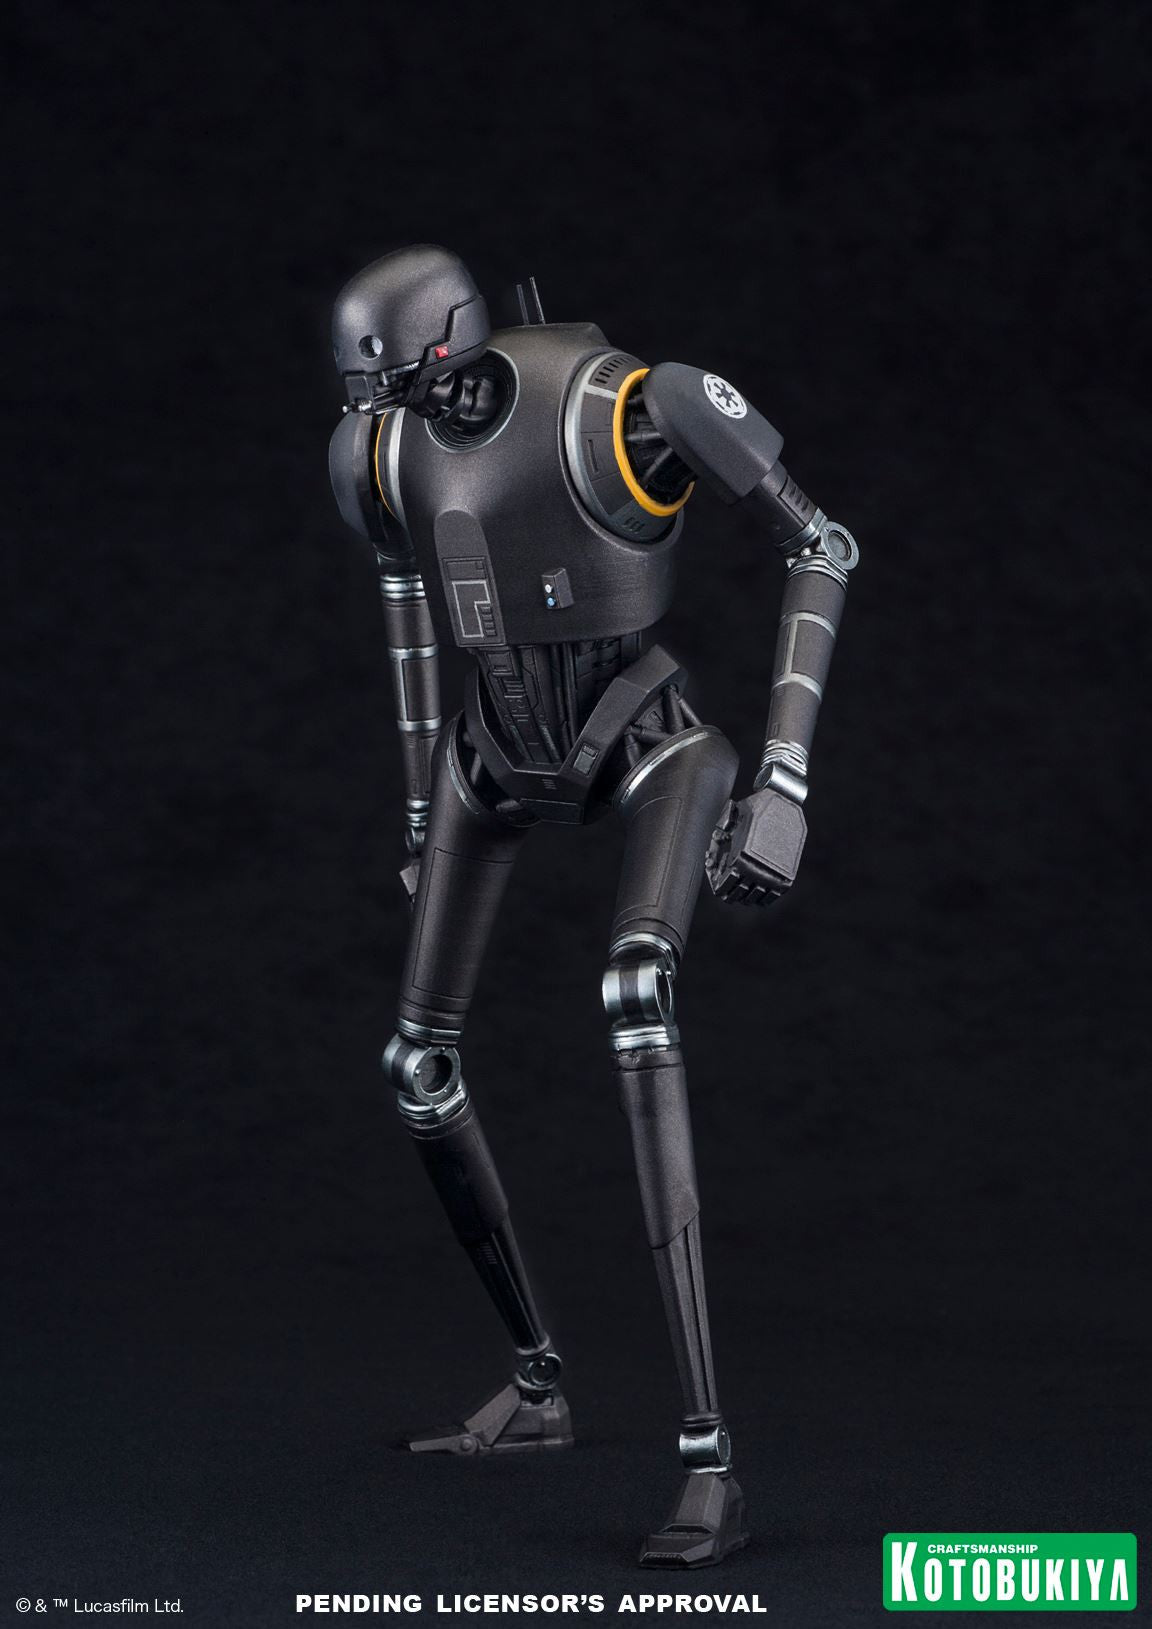 Kotobukiya - ARTFX+ - Rogue One: A Star Wars Story - K-2SO (1/10 scale) - Marvelous Toys - 5